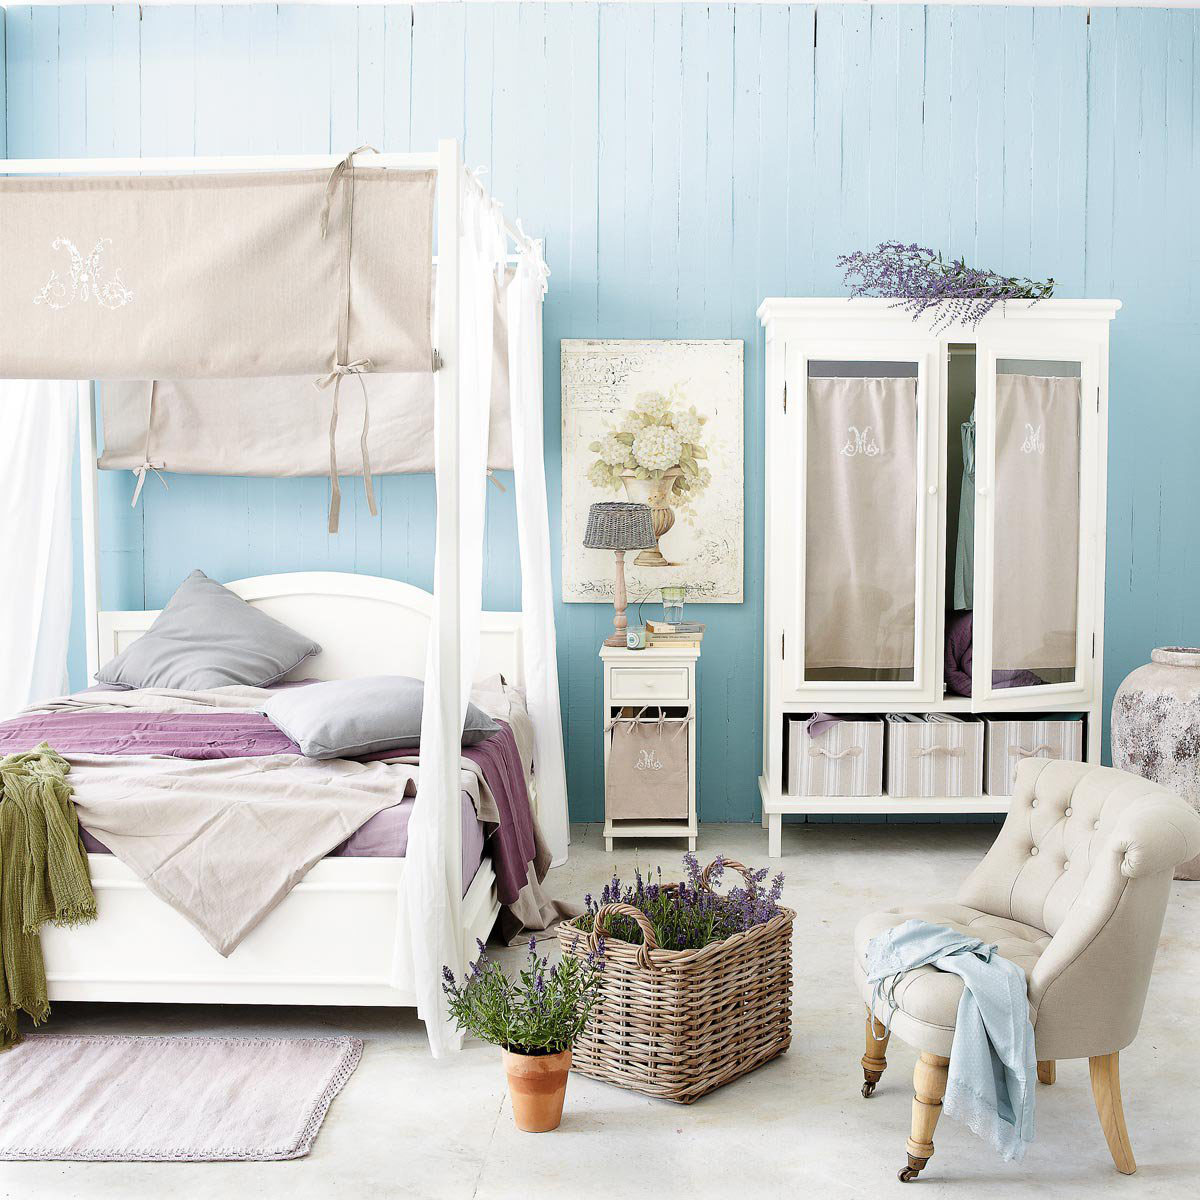 Flaunt Your Bedrooms with Decorative Canopy Beds (part-2): Light Caressed Modern Bedroom Where Blue Wooden Walls Are The Perfect Background For A White Canopy Bed And Different Shades Of Purple Merge In A Calming Effect